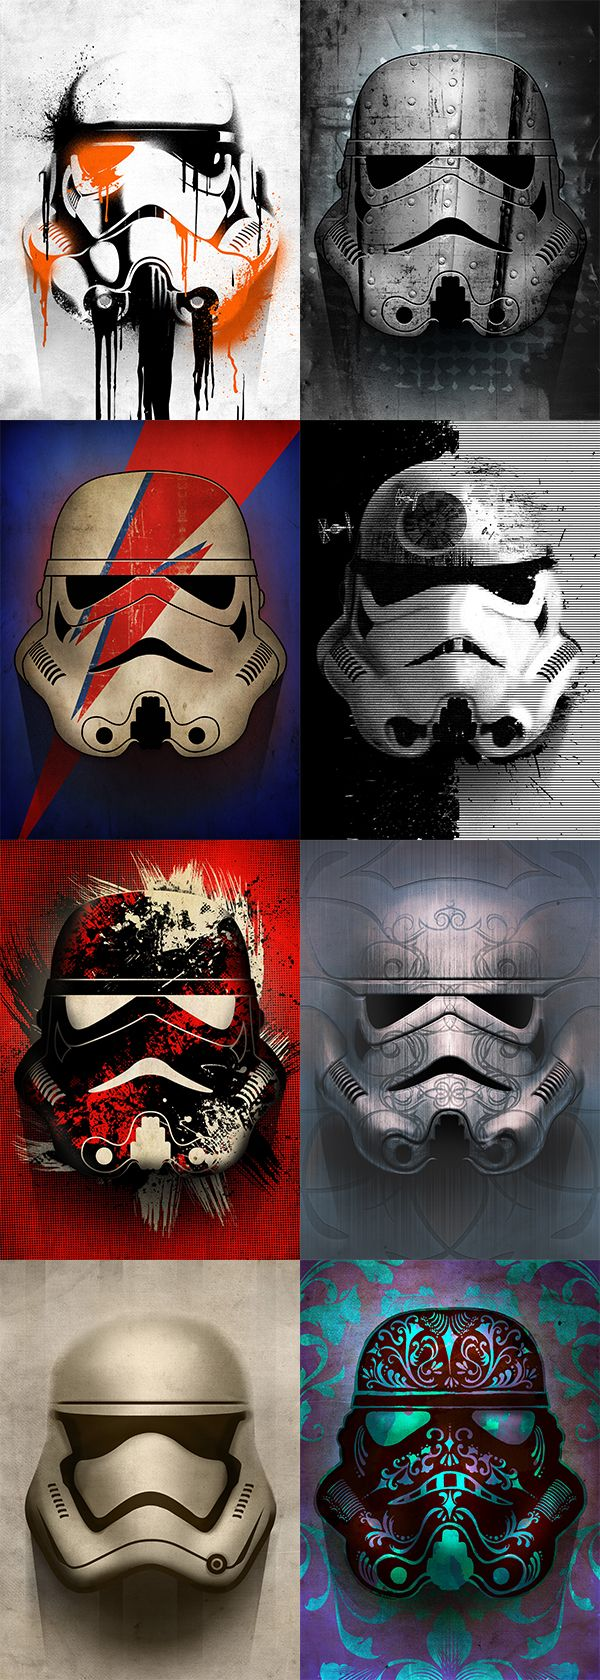 Coolest Star Wars Posters Ever...